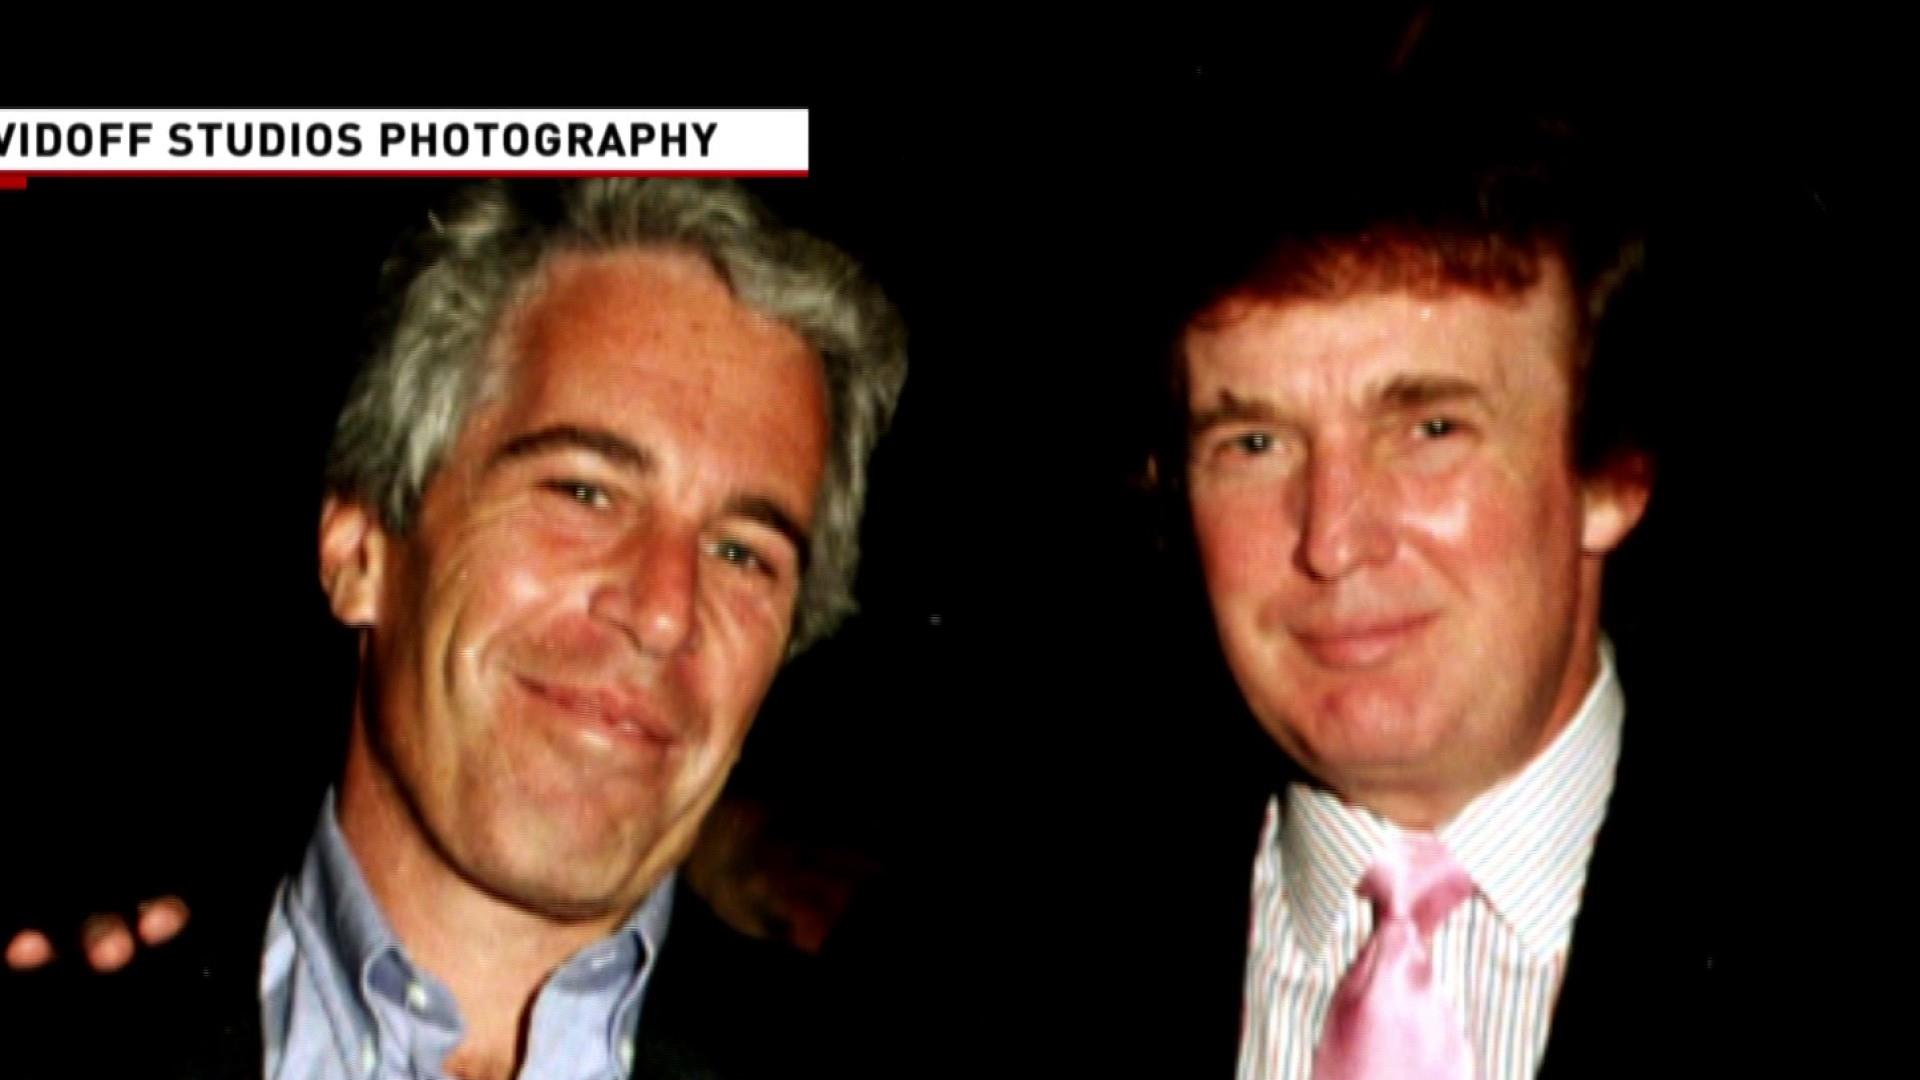 New report: Trump and Epstein hosted party with 28 girls in 1992